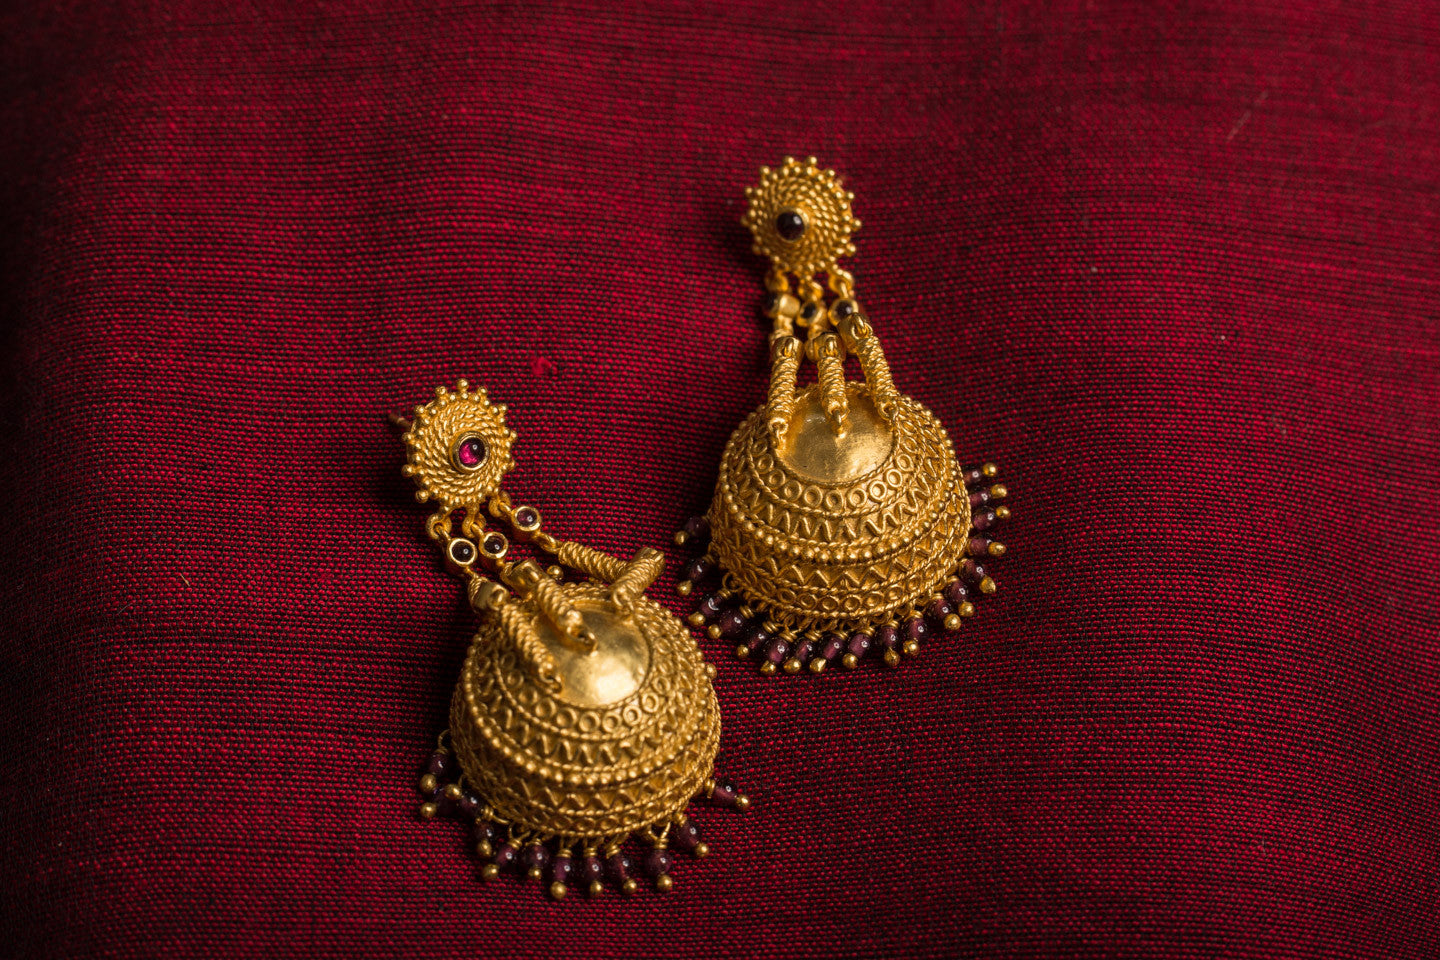 20a437-silver-gold-plated-amrapali-earrings-garnet-jhumka